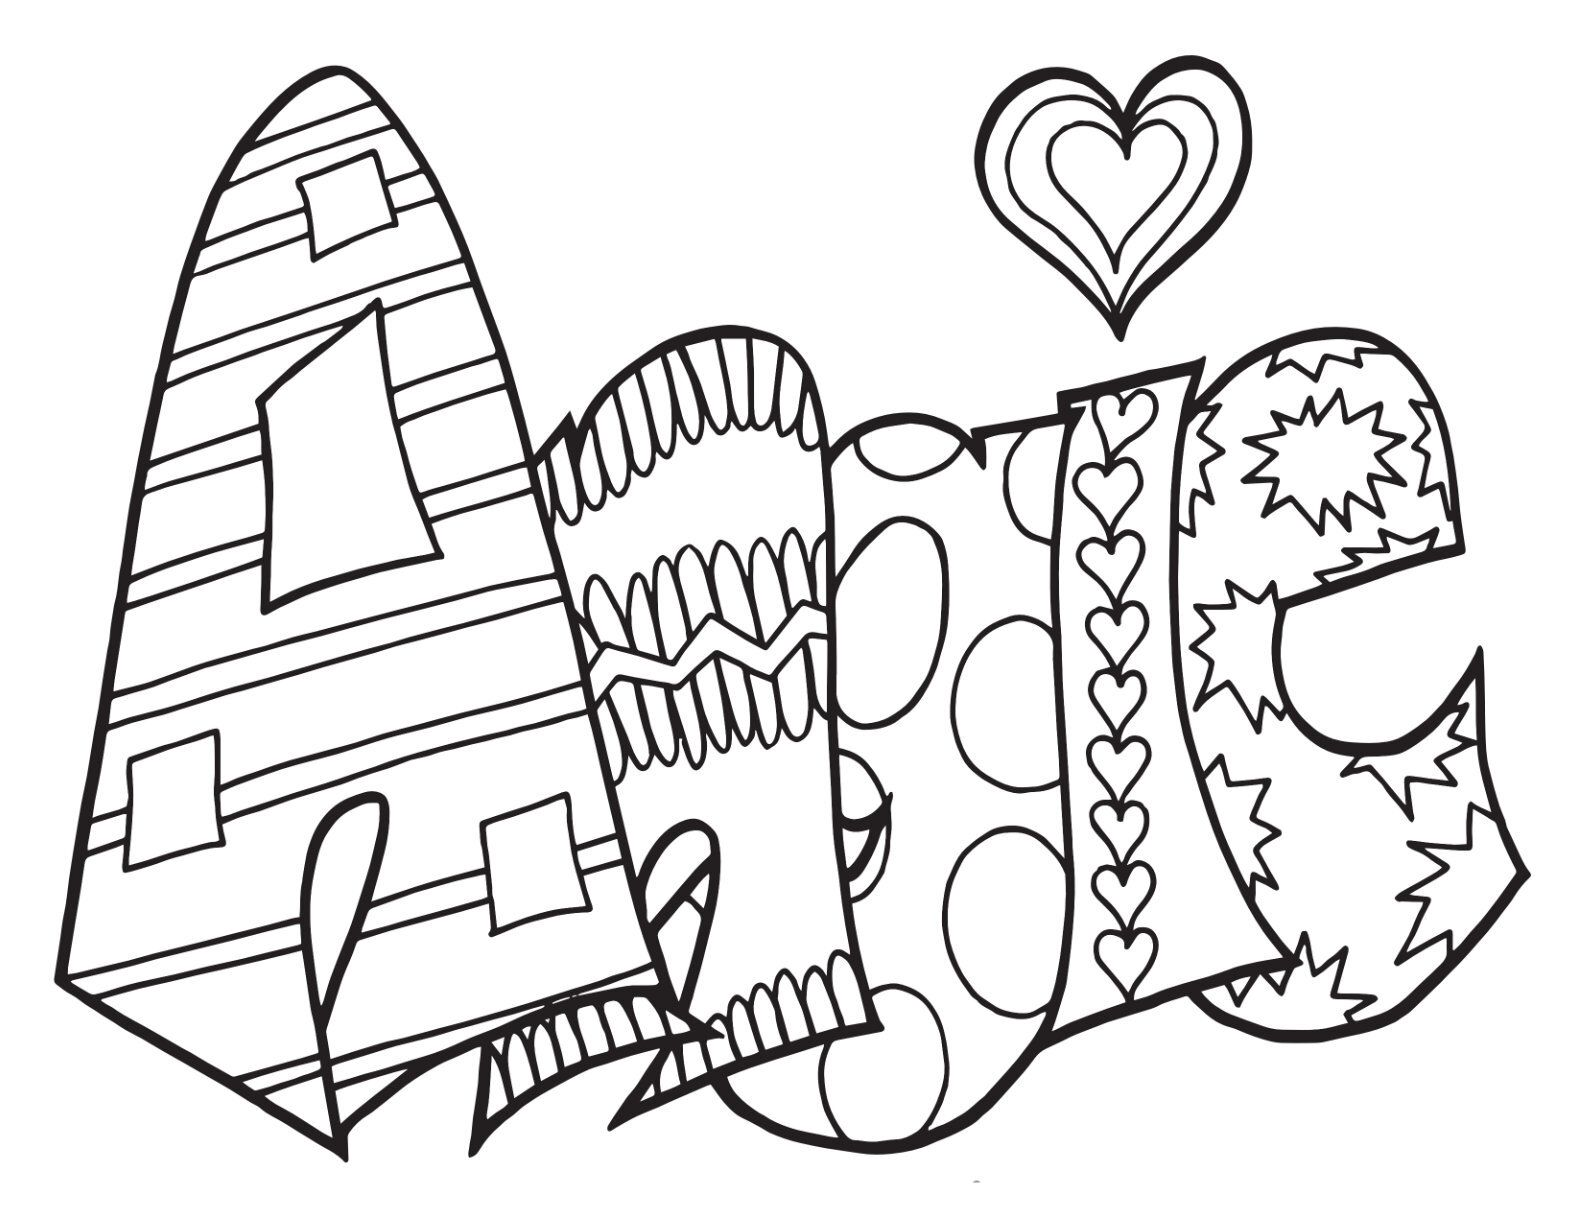 Angie Free Printable Coloring Page Stevie Doodles Name Coloring Pages Free Printable Coloring Pages Abstract Coloring Pages